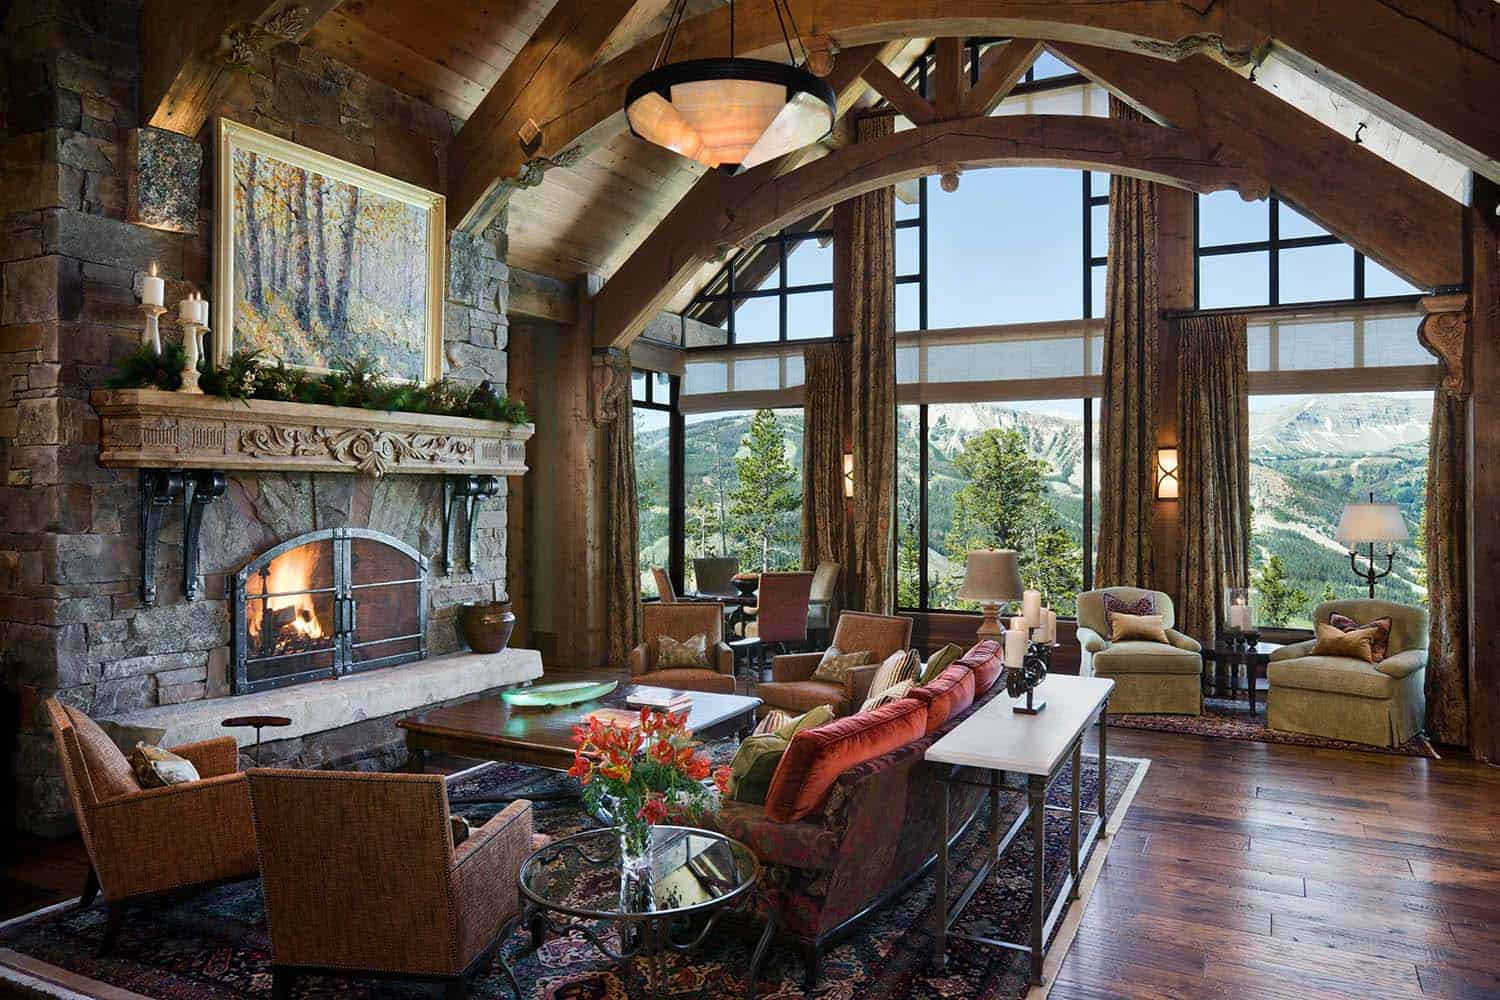 Rustic mountain home with breathtaking views over Big Sky Country